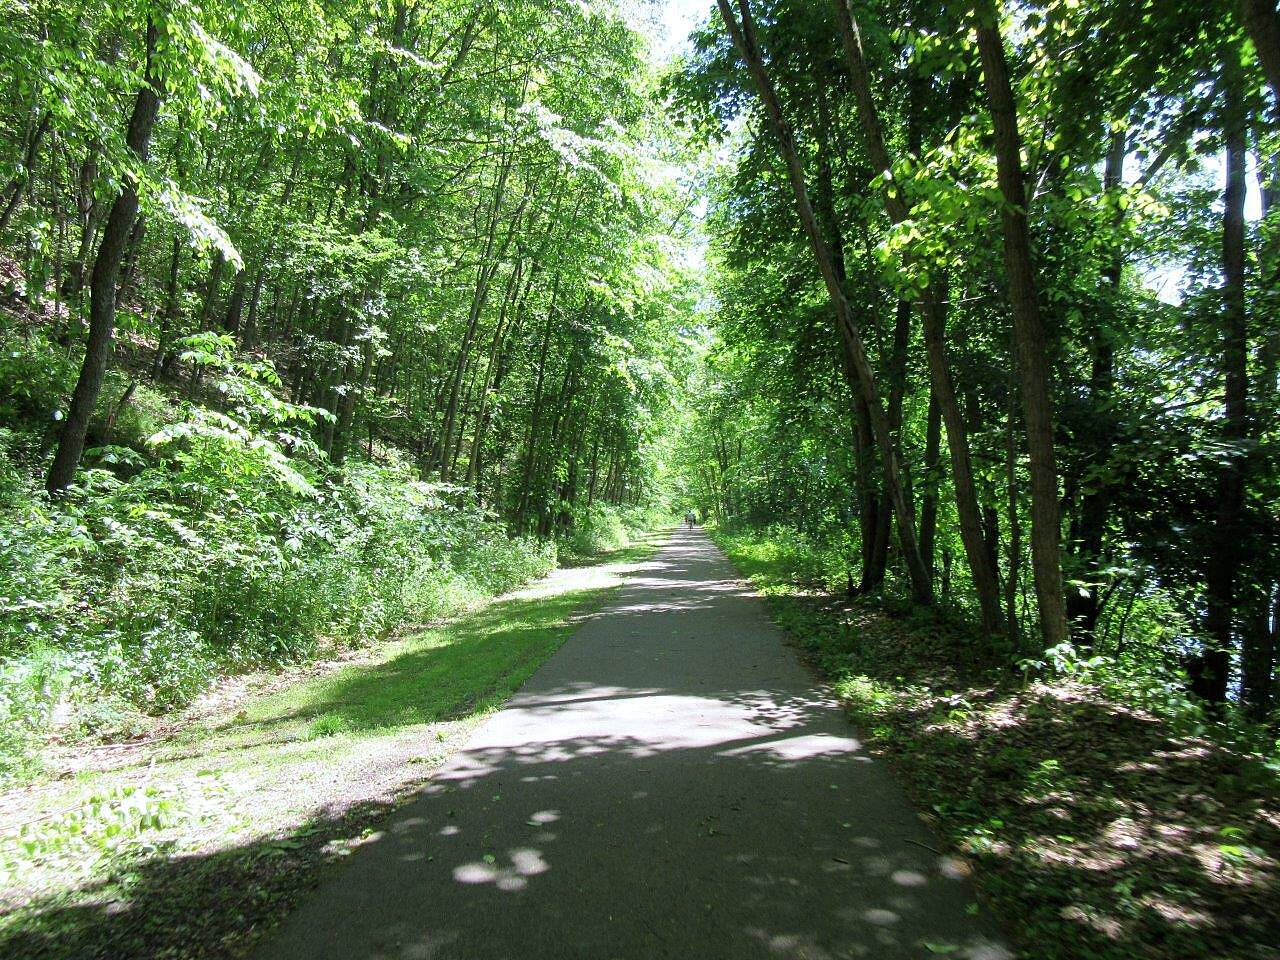 Allegheny River Trail The trail The trail between Foxburg and Parker, PA